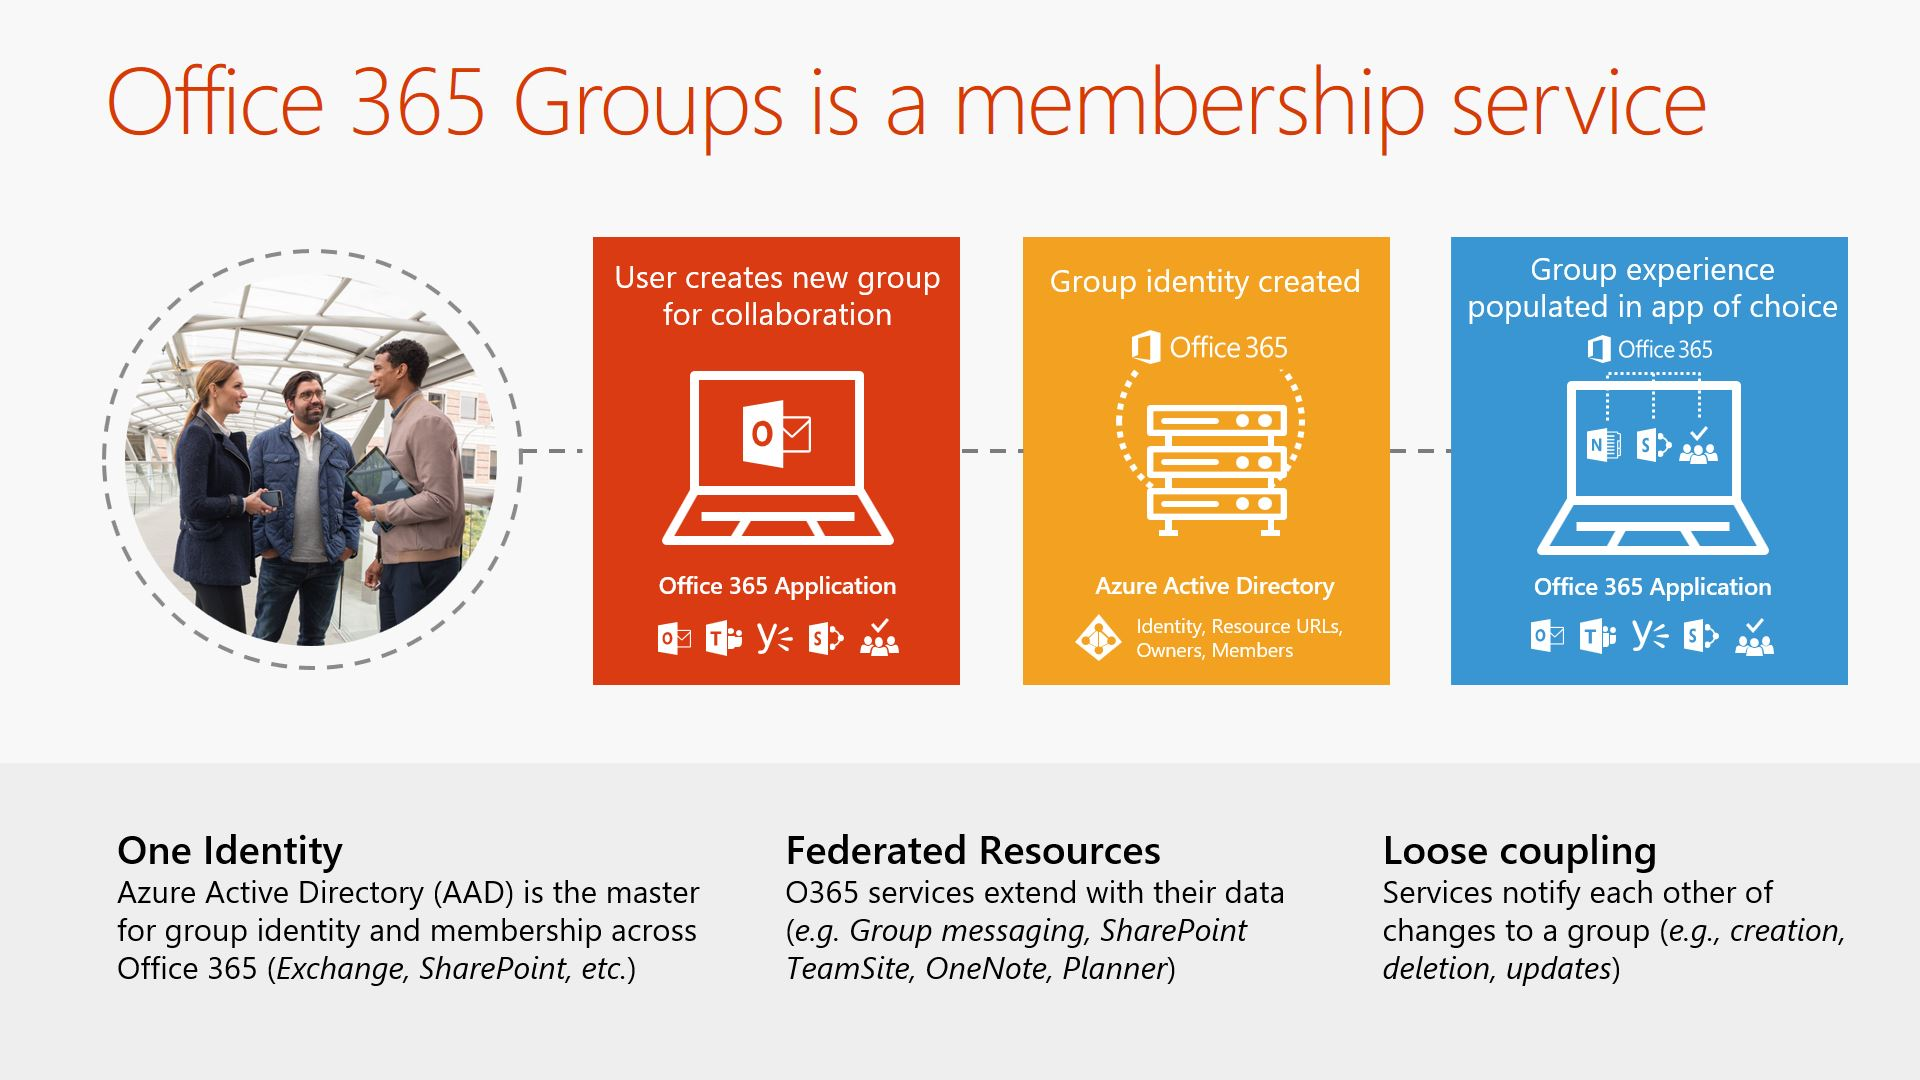 Webinar Slide: Office 365 Groups is a membership service